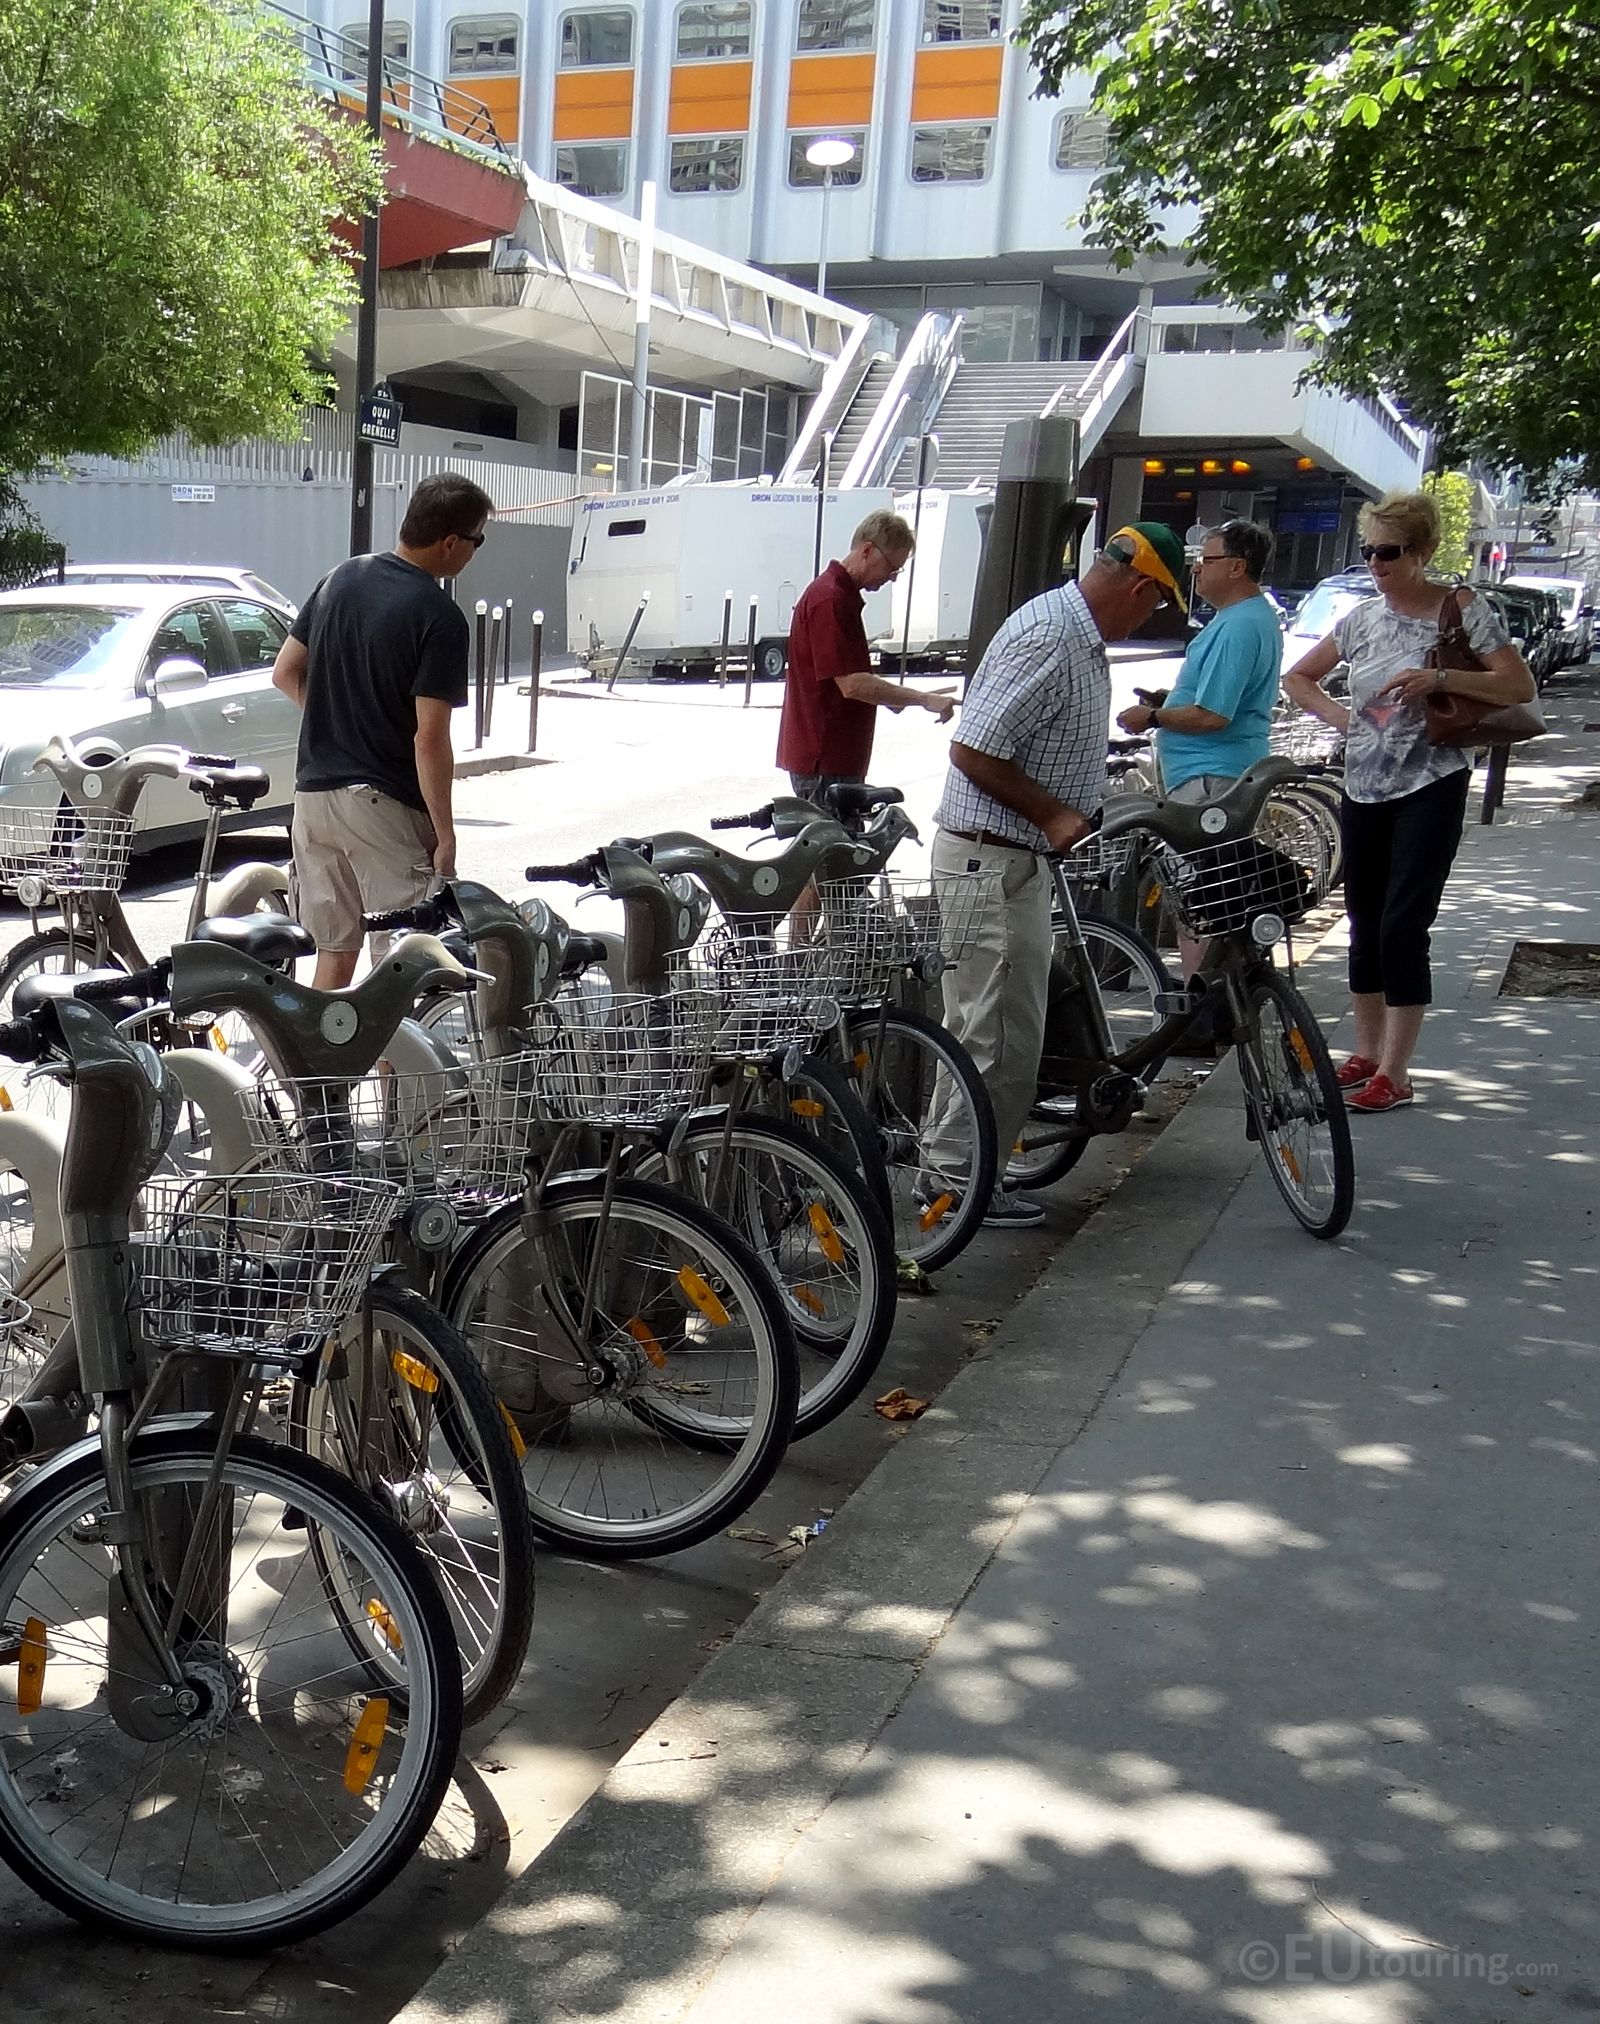 A Group Of Tourists Getting Ready To Use The Velib Bikes To Travel